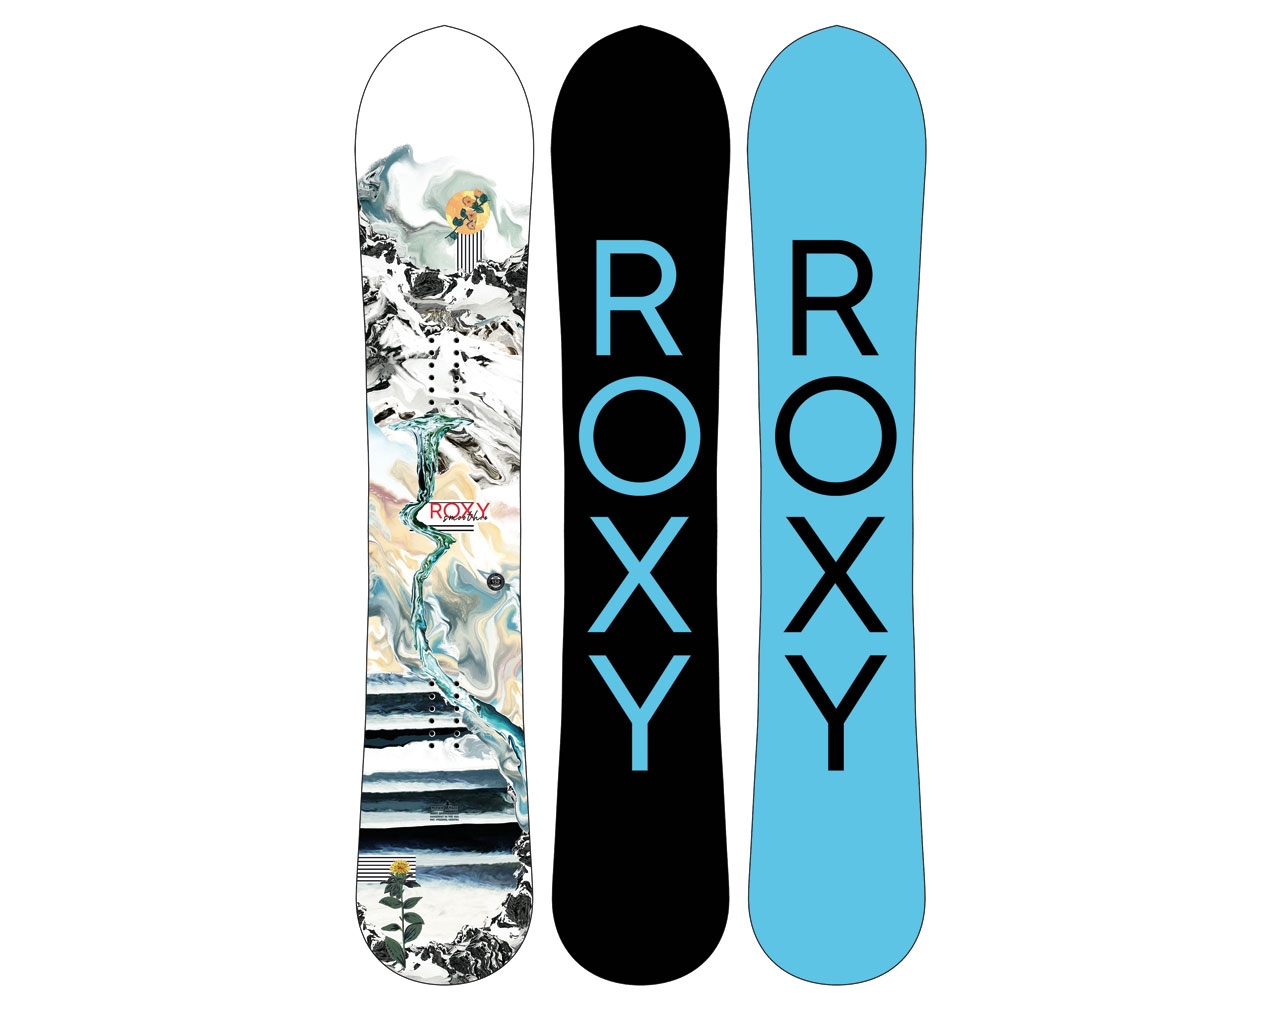 Roxy FW20/21 Snowboard Preview